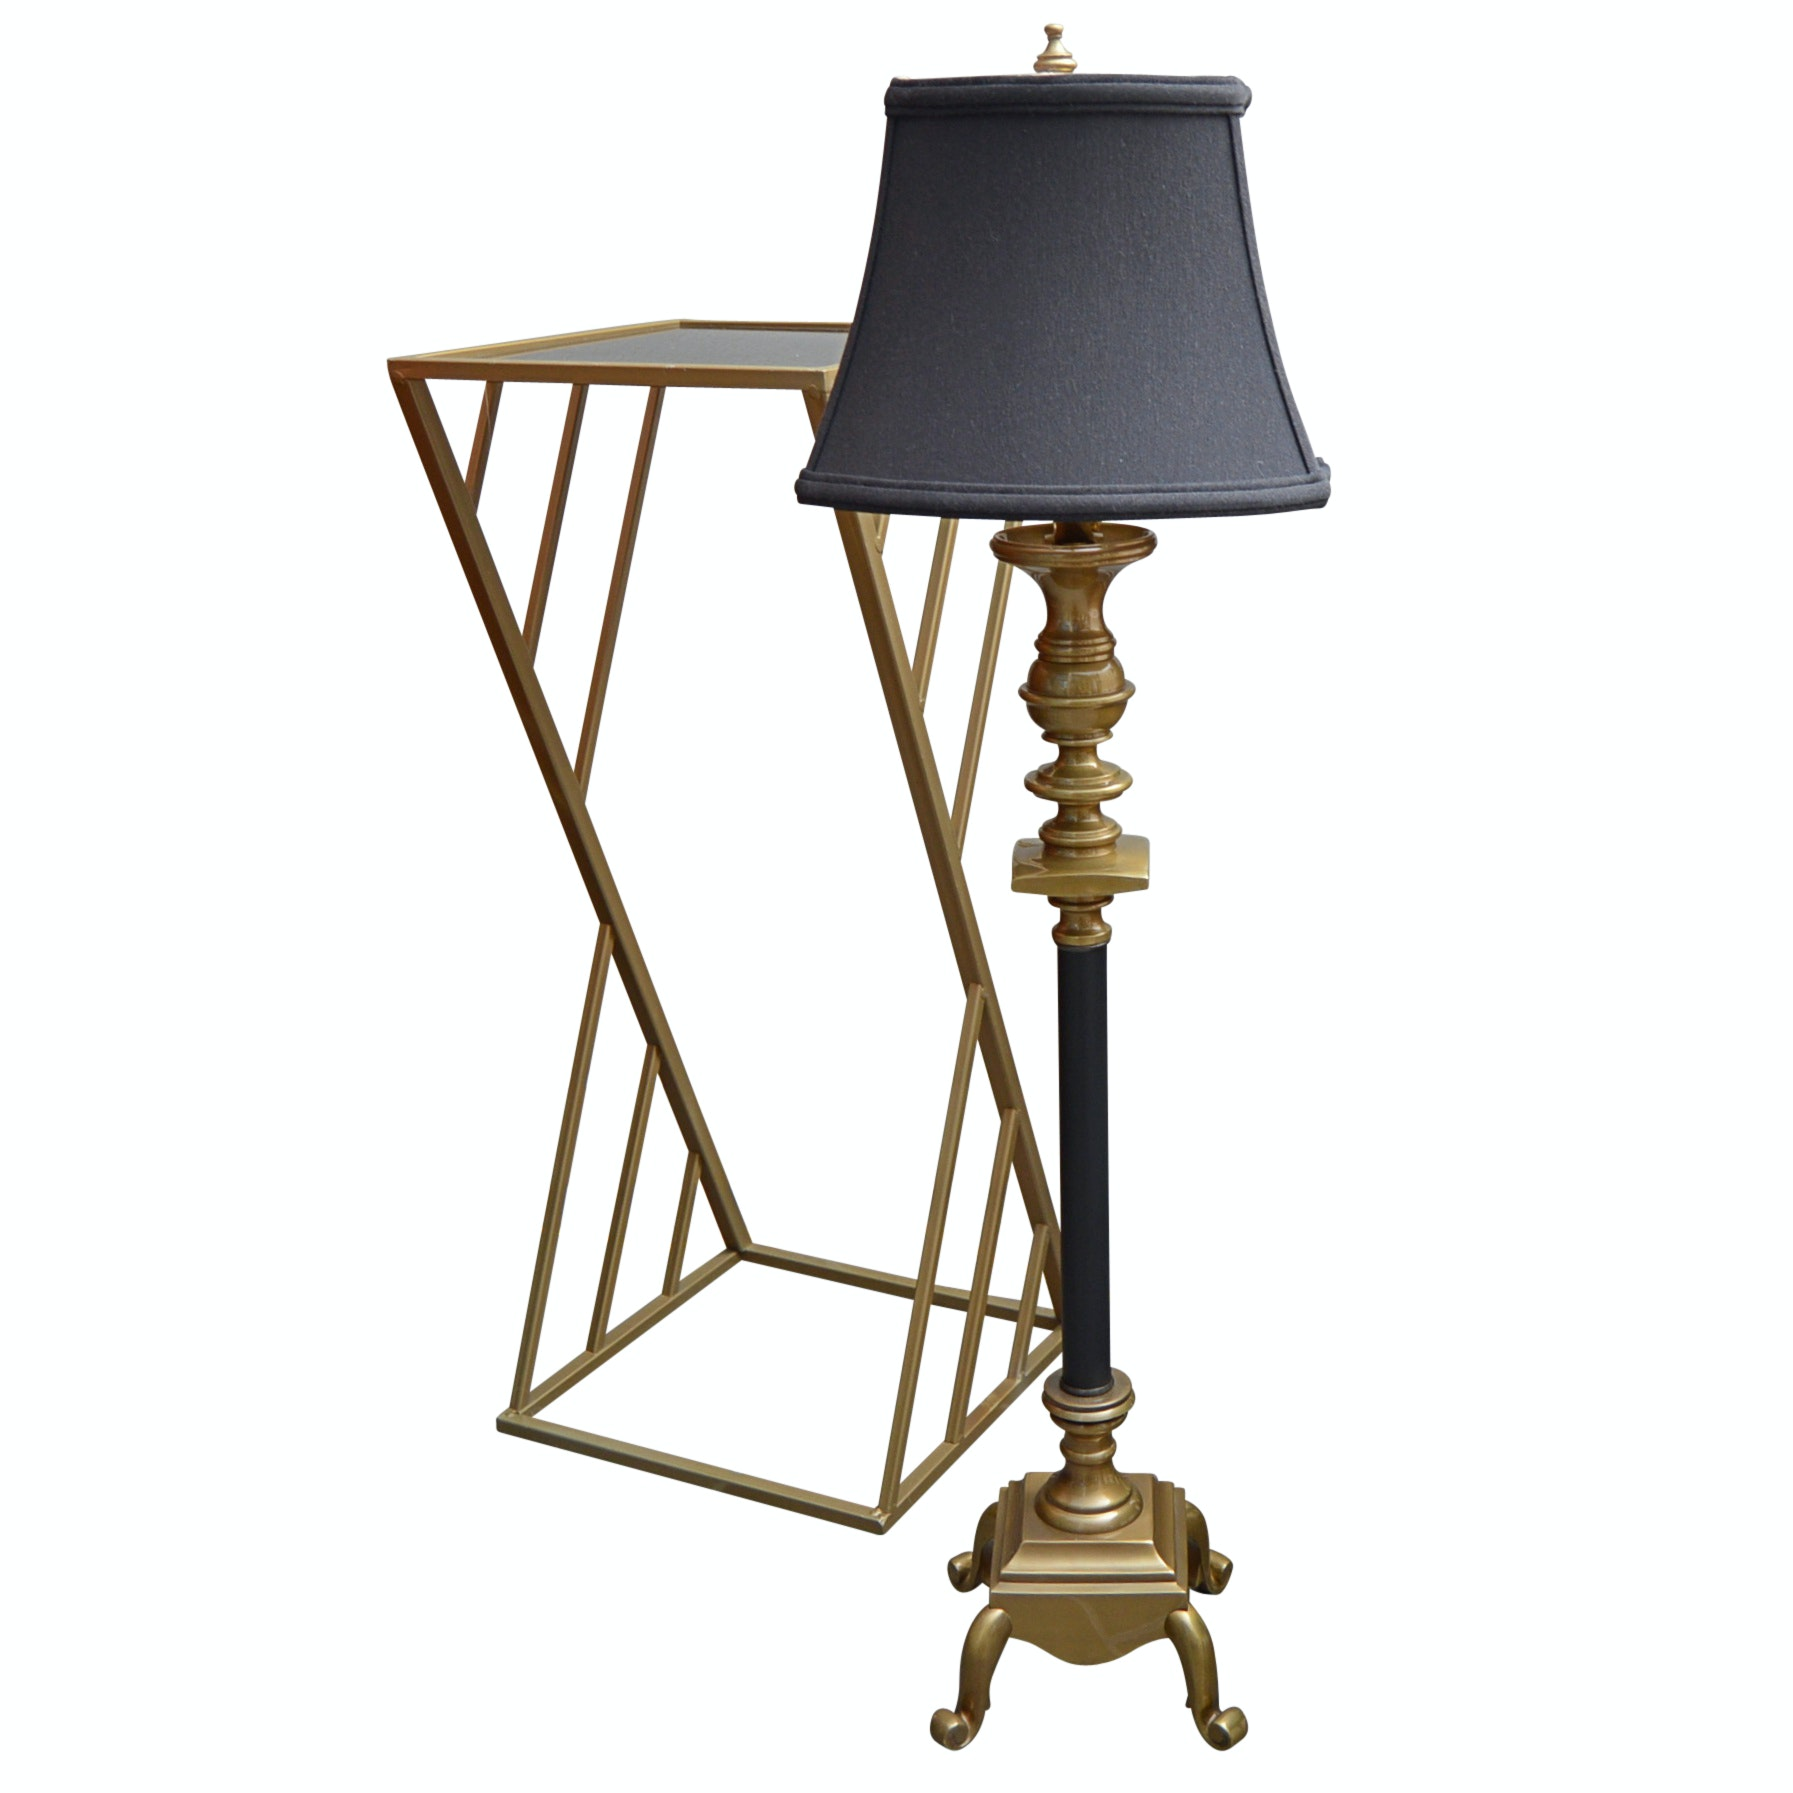 Brass Candlestick Lamp and Accent Table